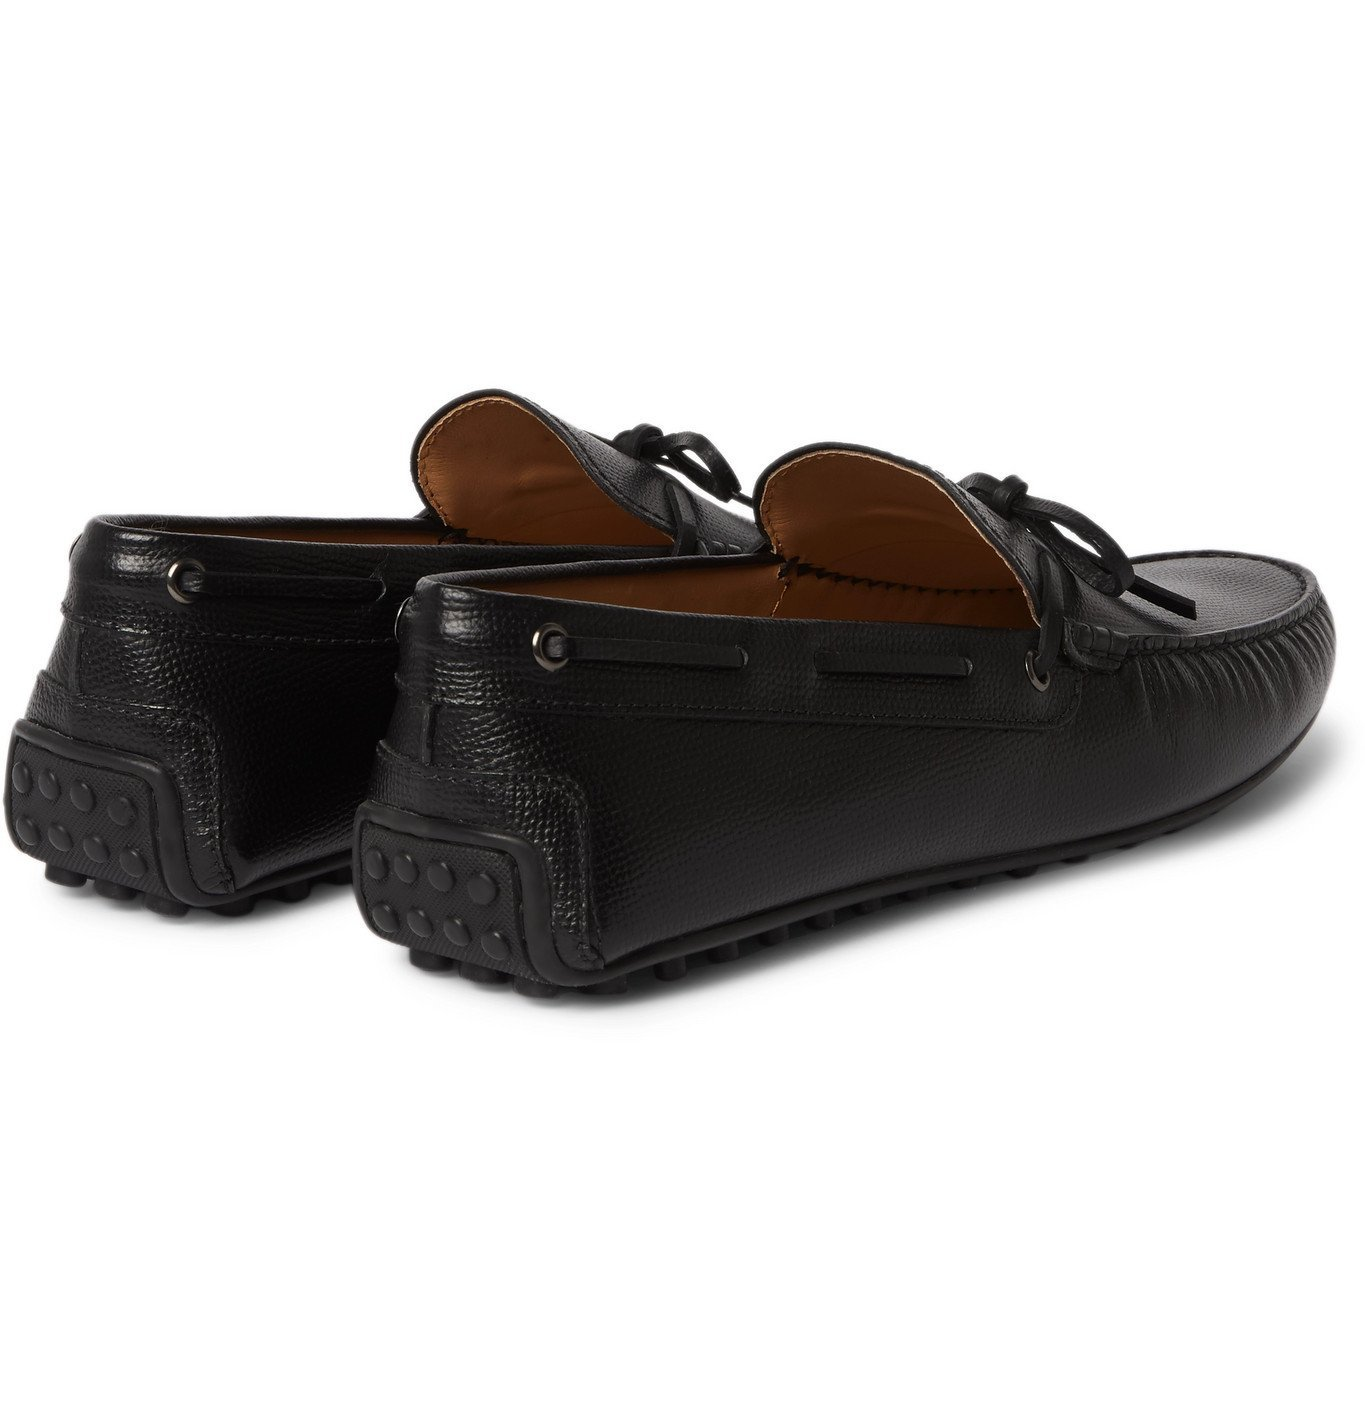 Tod's - City Full-Grain Leather Driving Shoes - Black